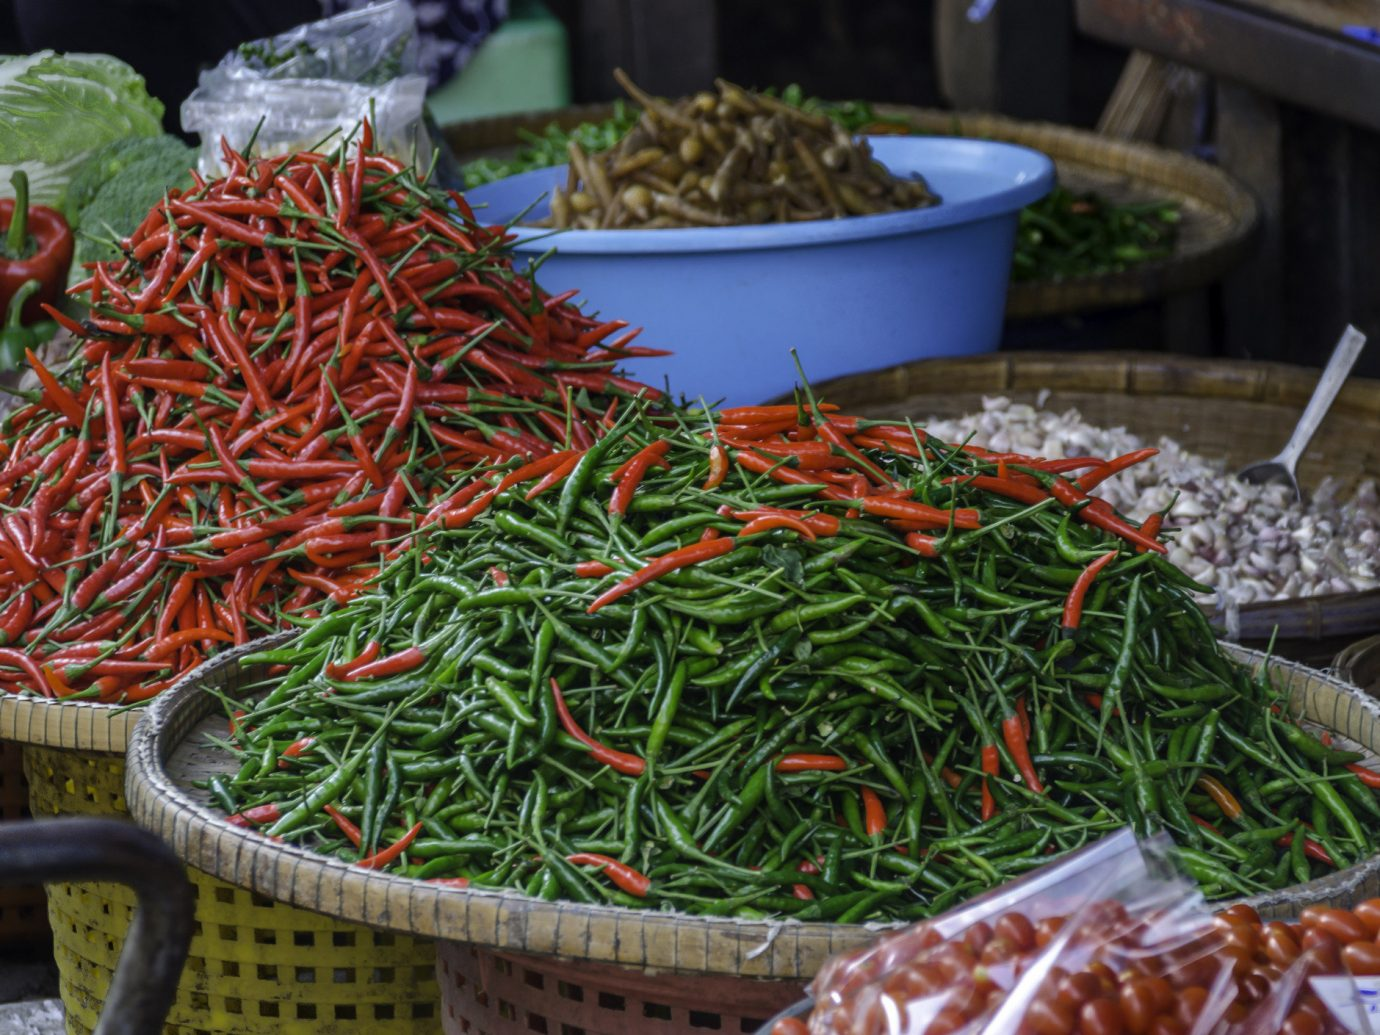 Food + Drink food market City public space plant human settlement produce vegetable pepper leaf hot pepper flower herb crop chili pepper fresh meal meat